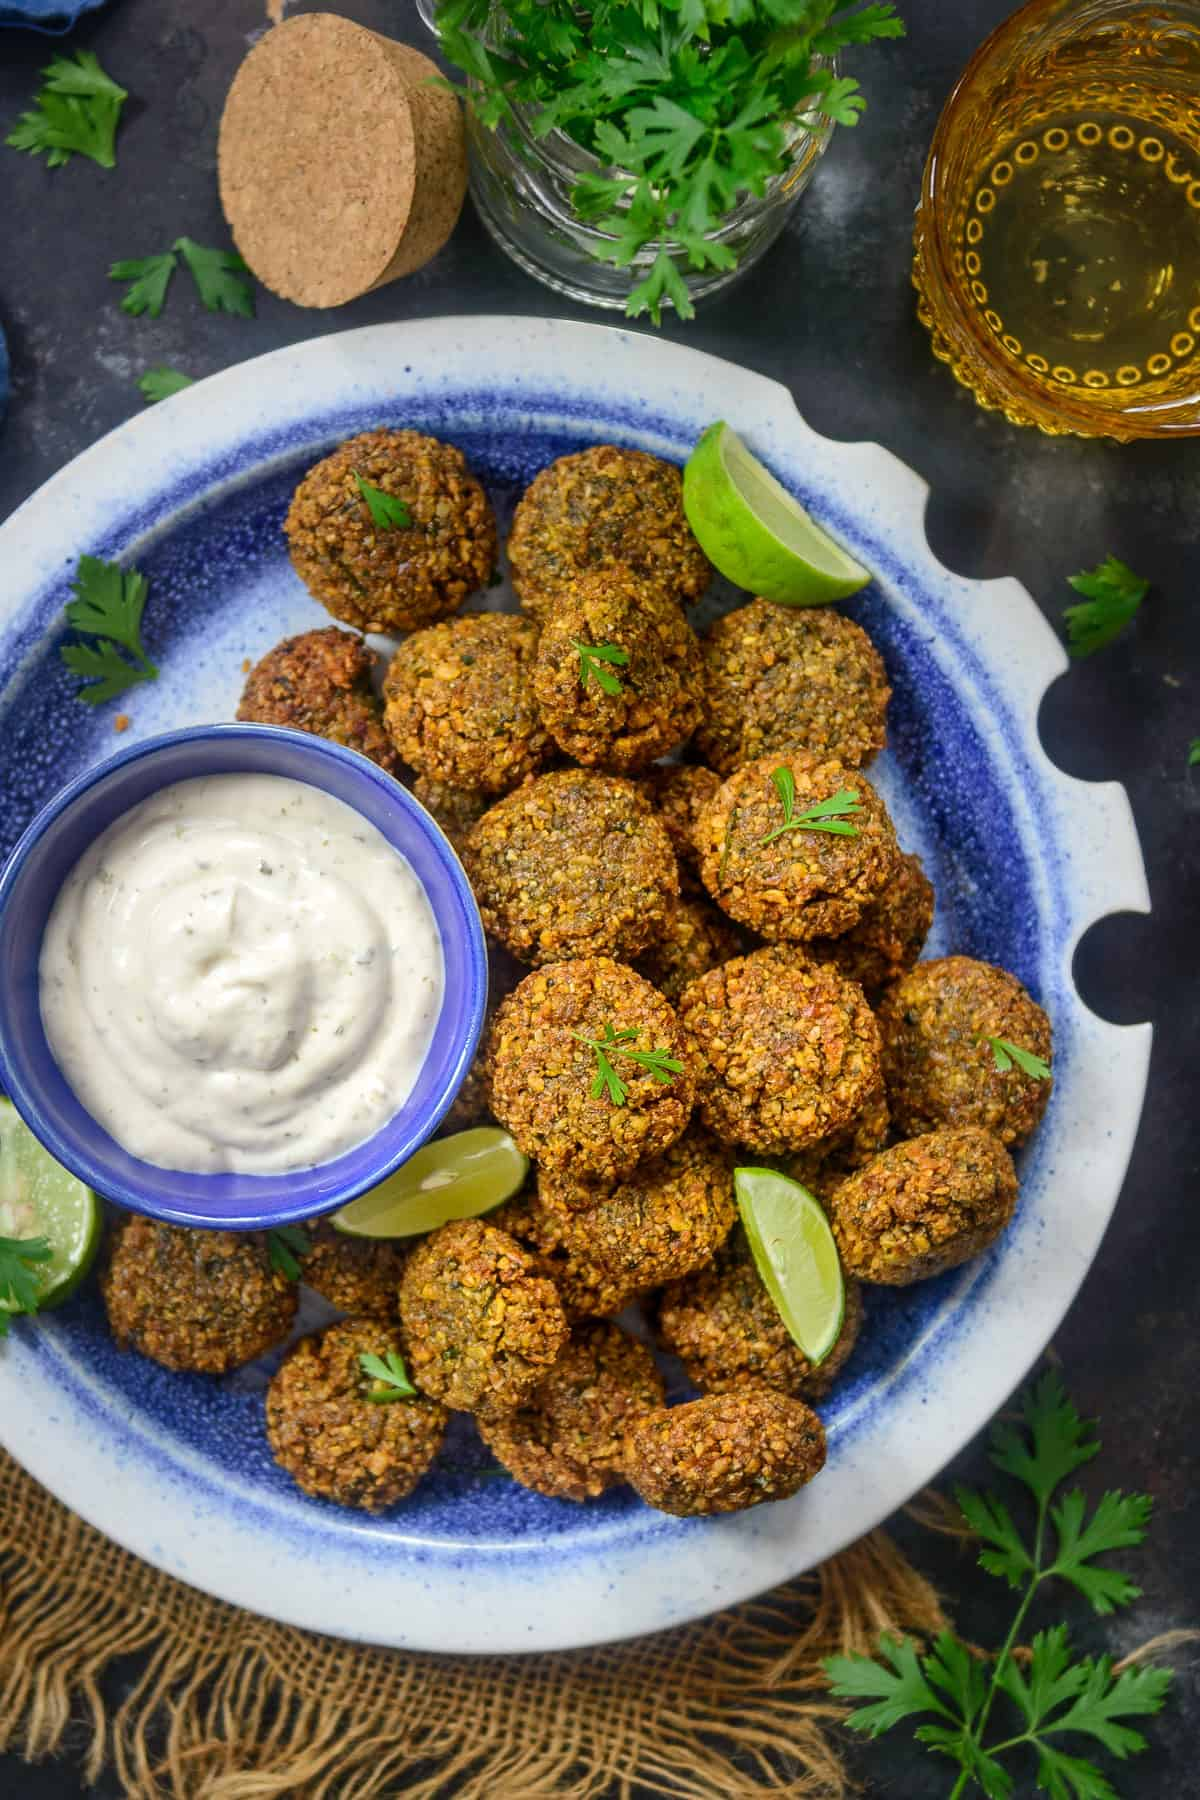 Falafel served on a plate.